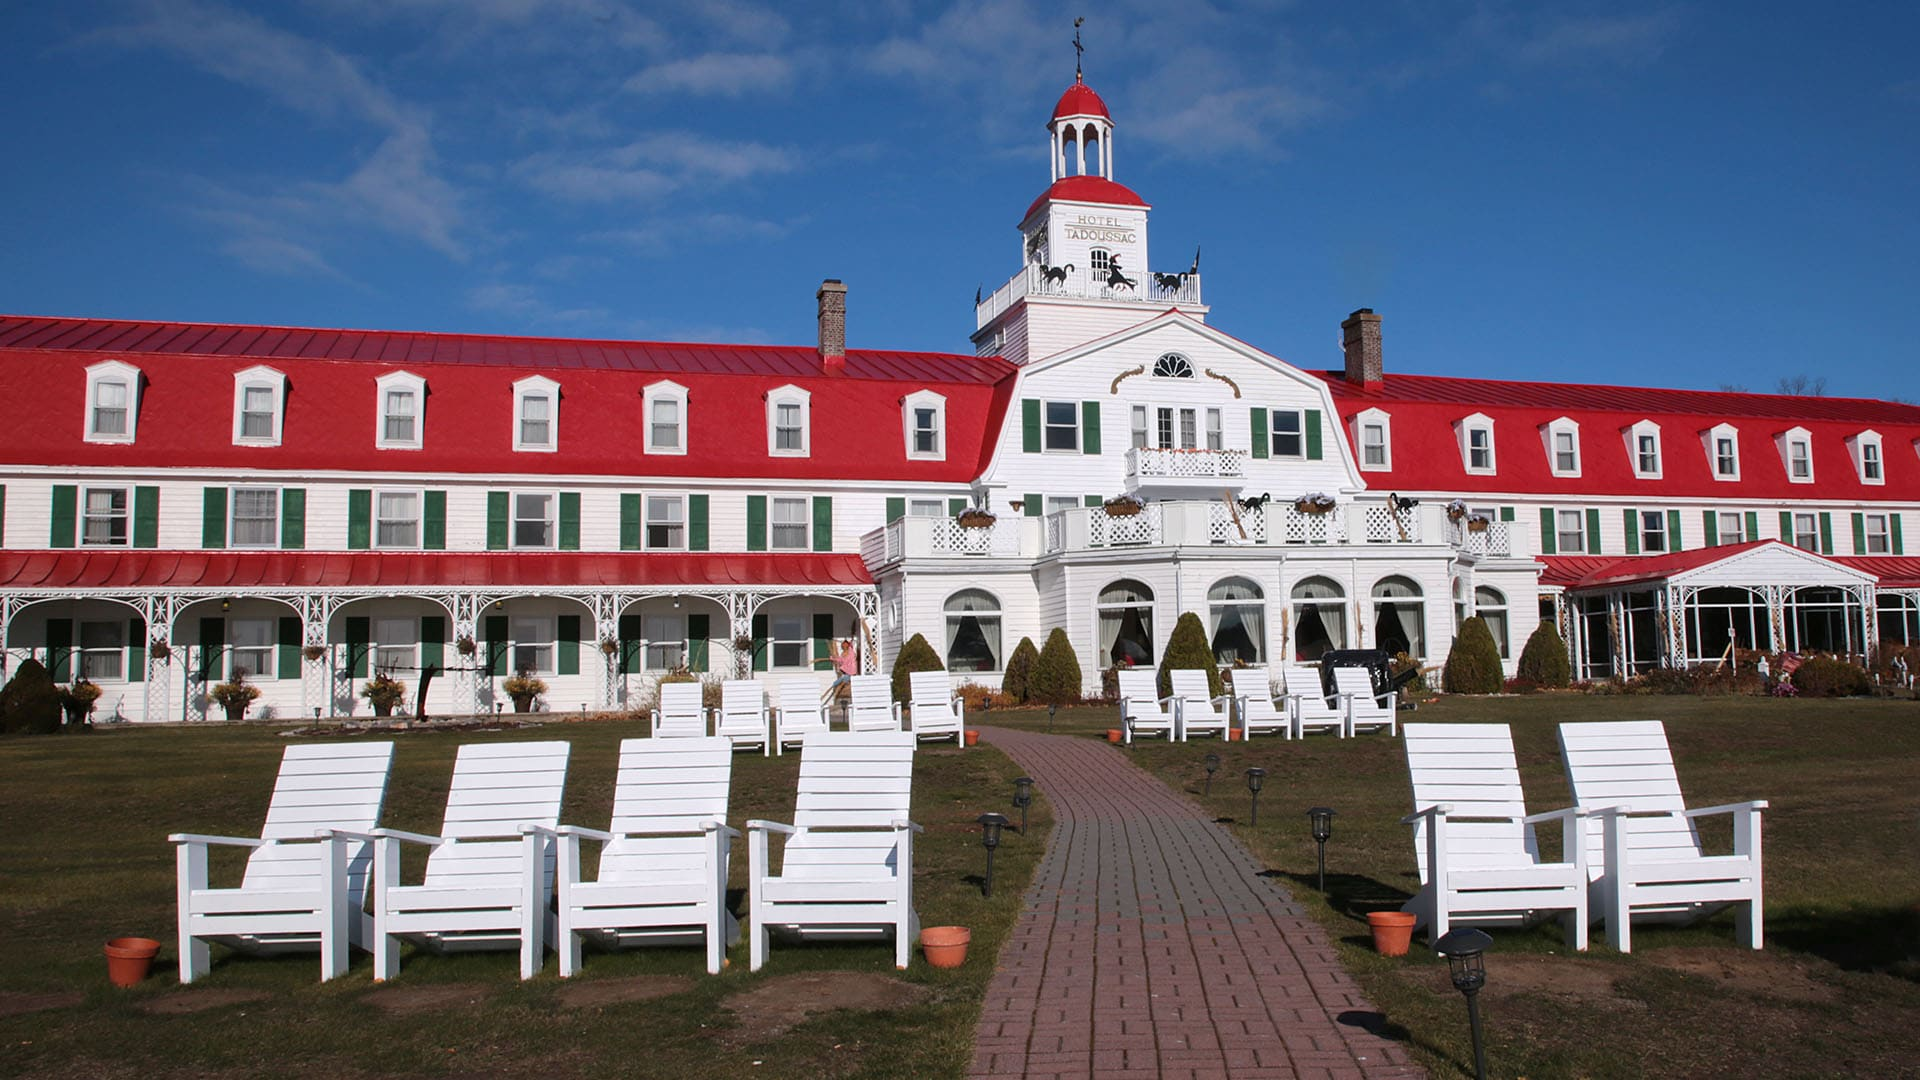 The distinctive Hotel Tadoussac opened in 1864.